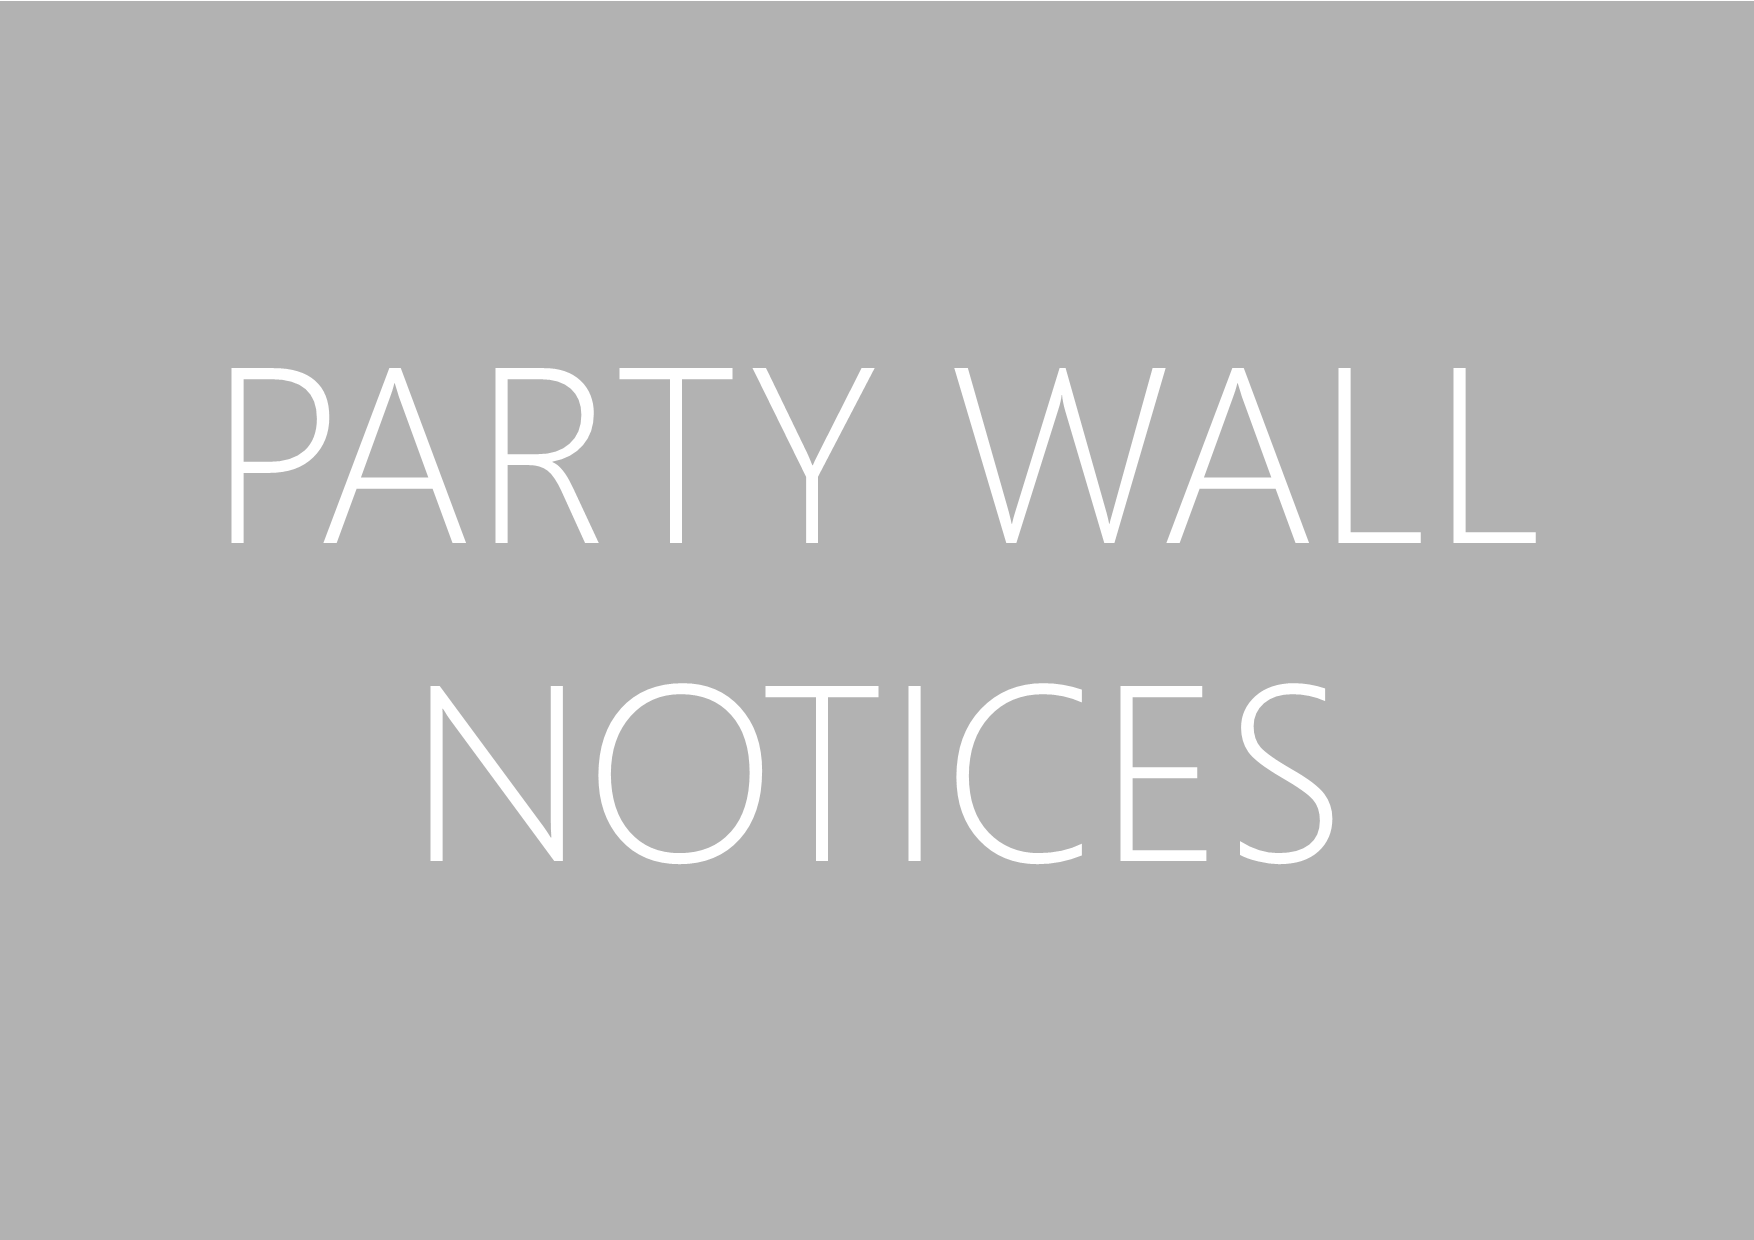 Party Wall Notices